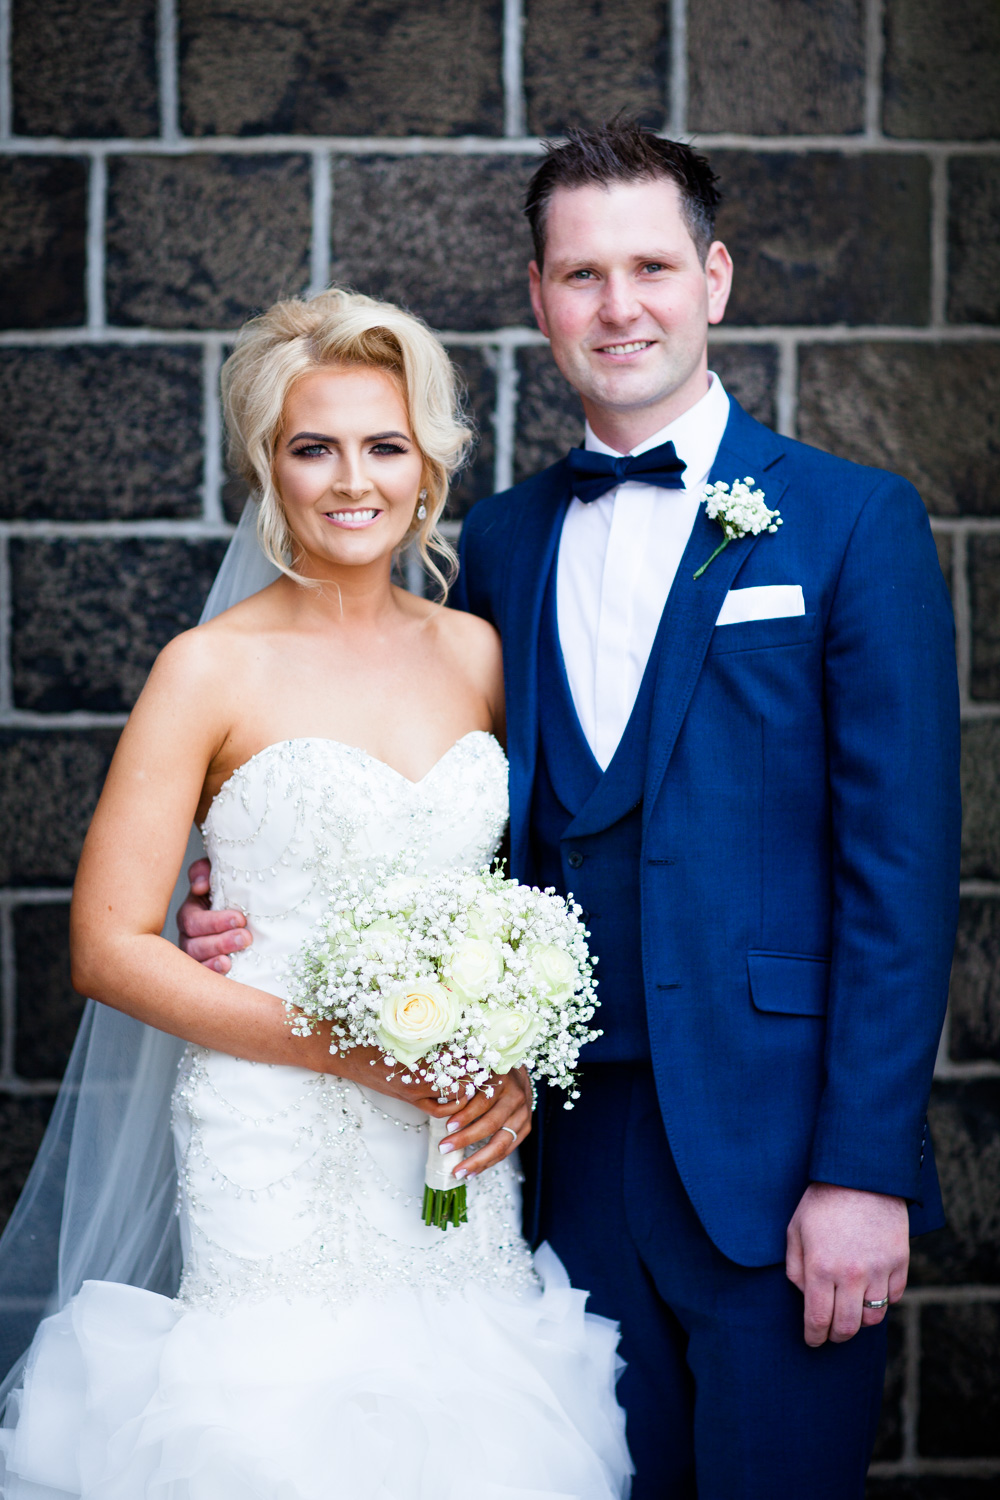 Mark_Barnes_wedding_photographer_Northern_Ireland_Wedding_photography_Carlingford_Four_Seasons_Wedding-30.jpg